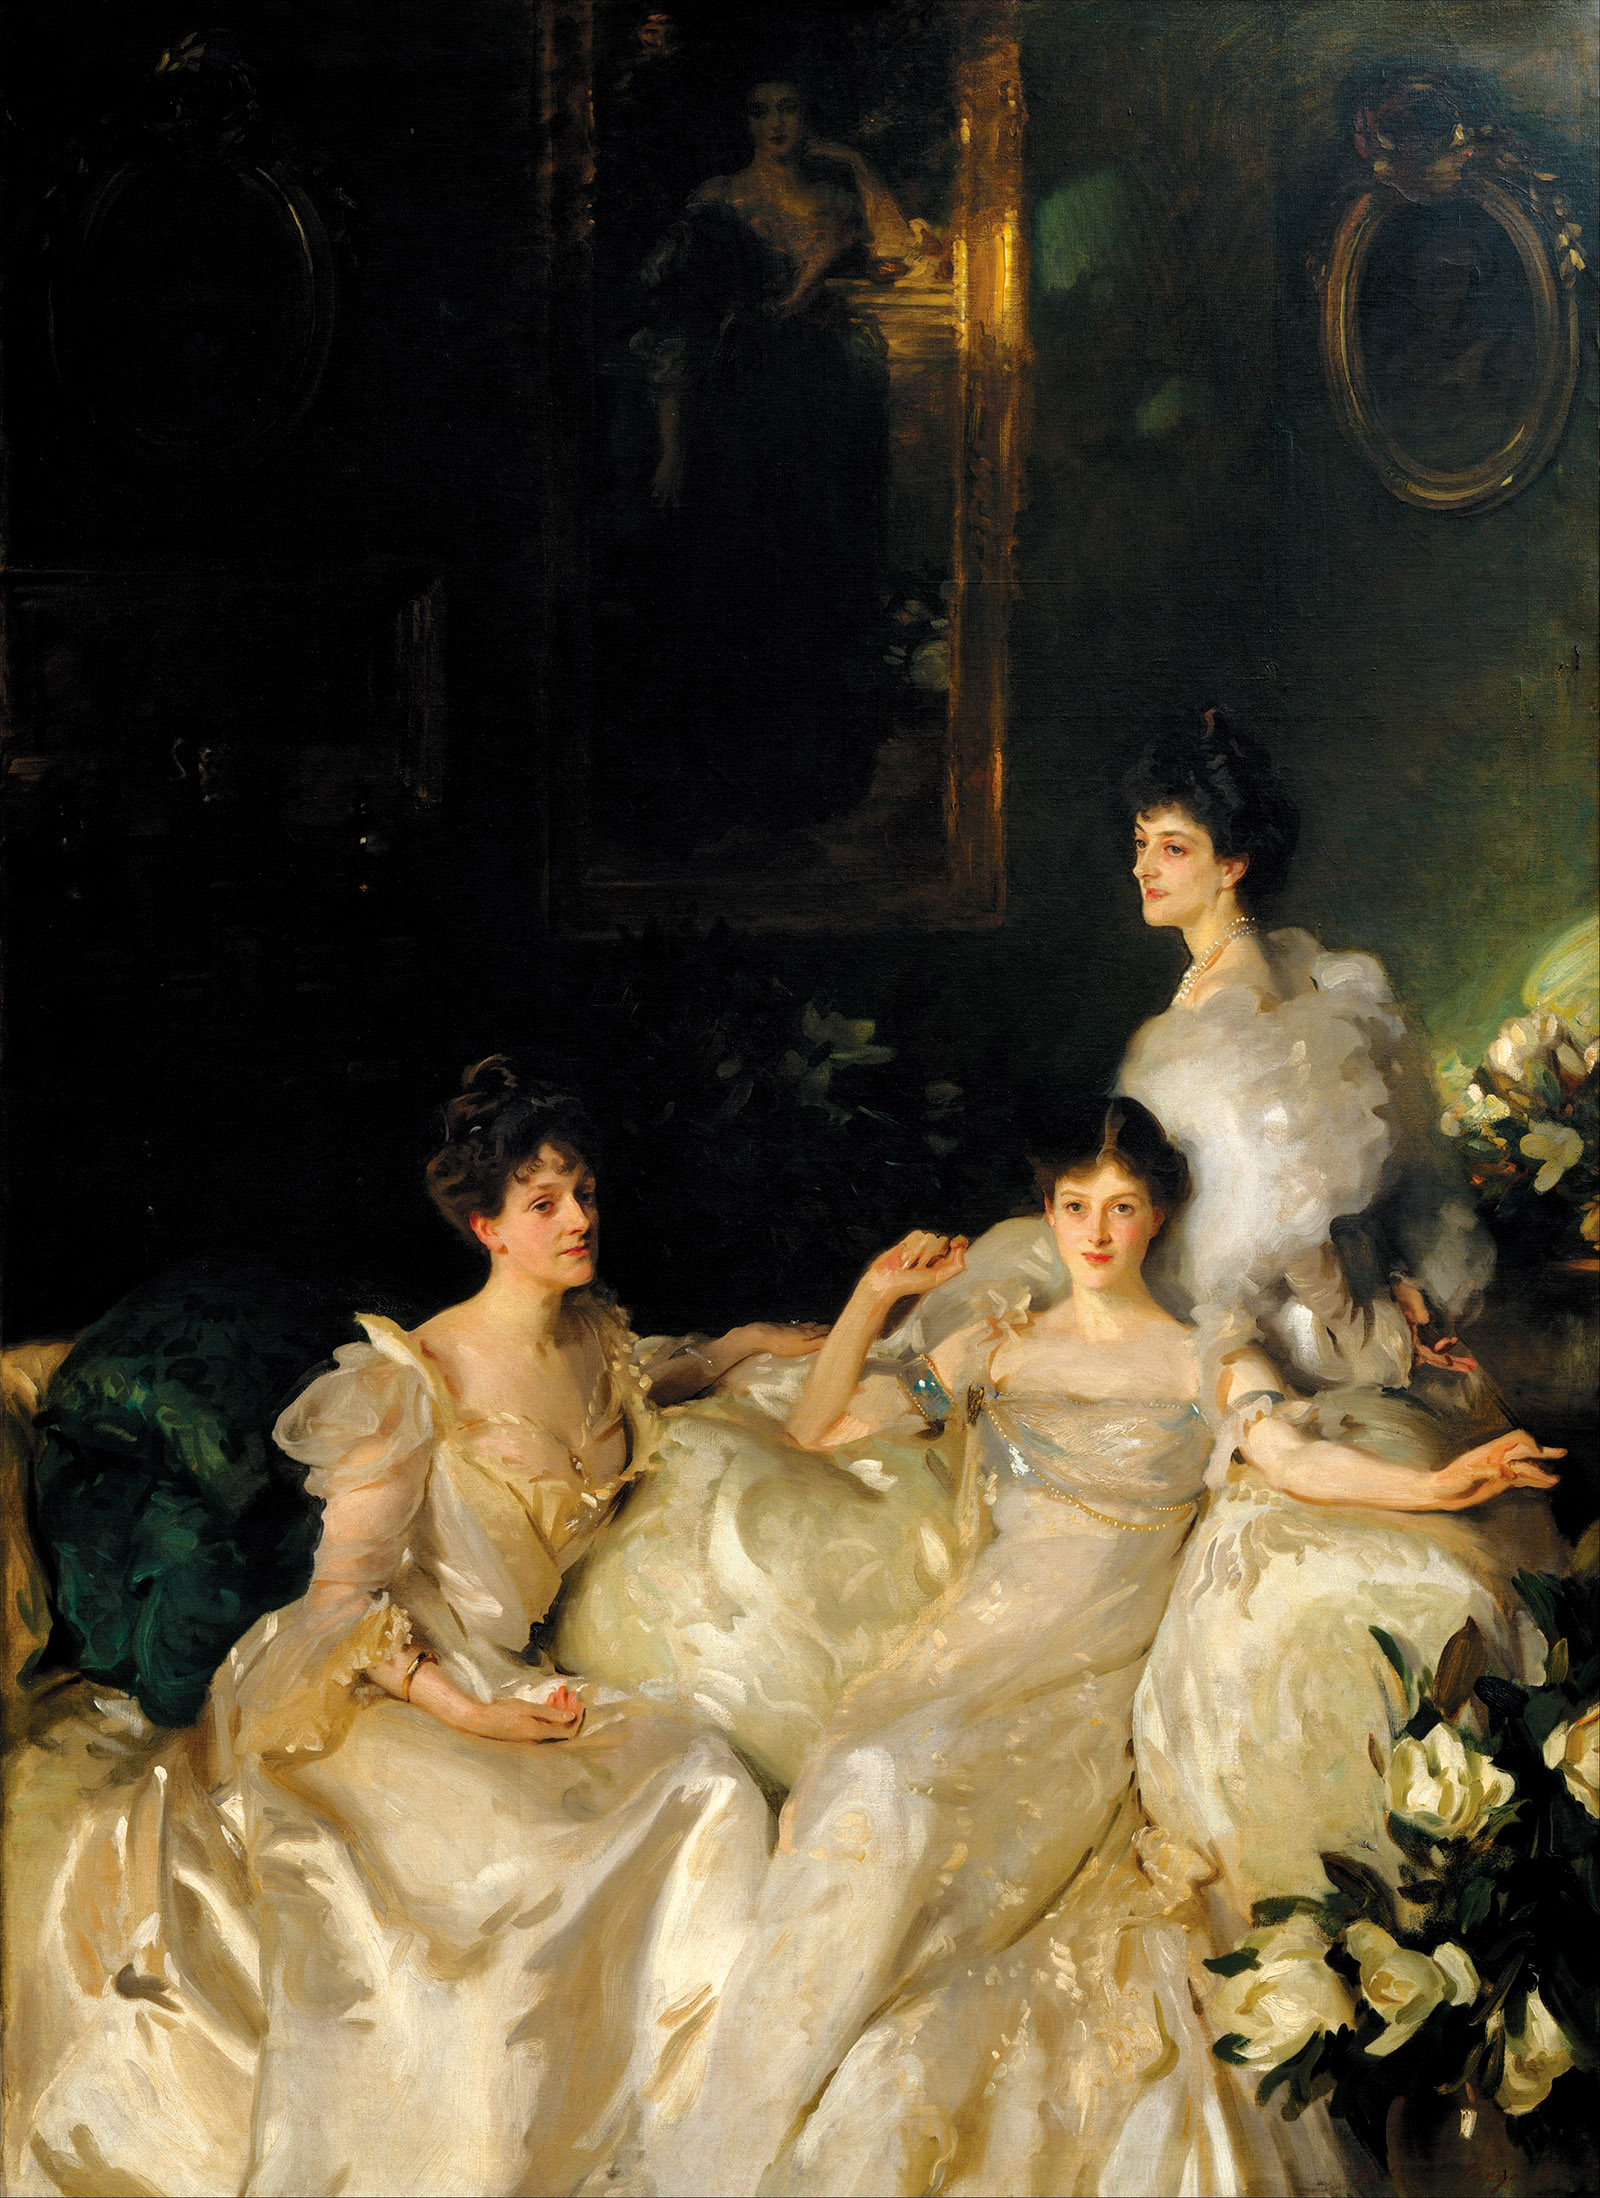 John Singer Sargent: The Wyndham Sisters: Lady Elcho, Mrs. Adeane, and Mrs. Tennant, 1899